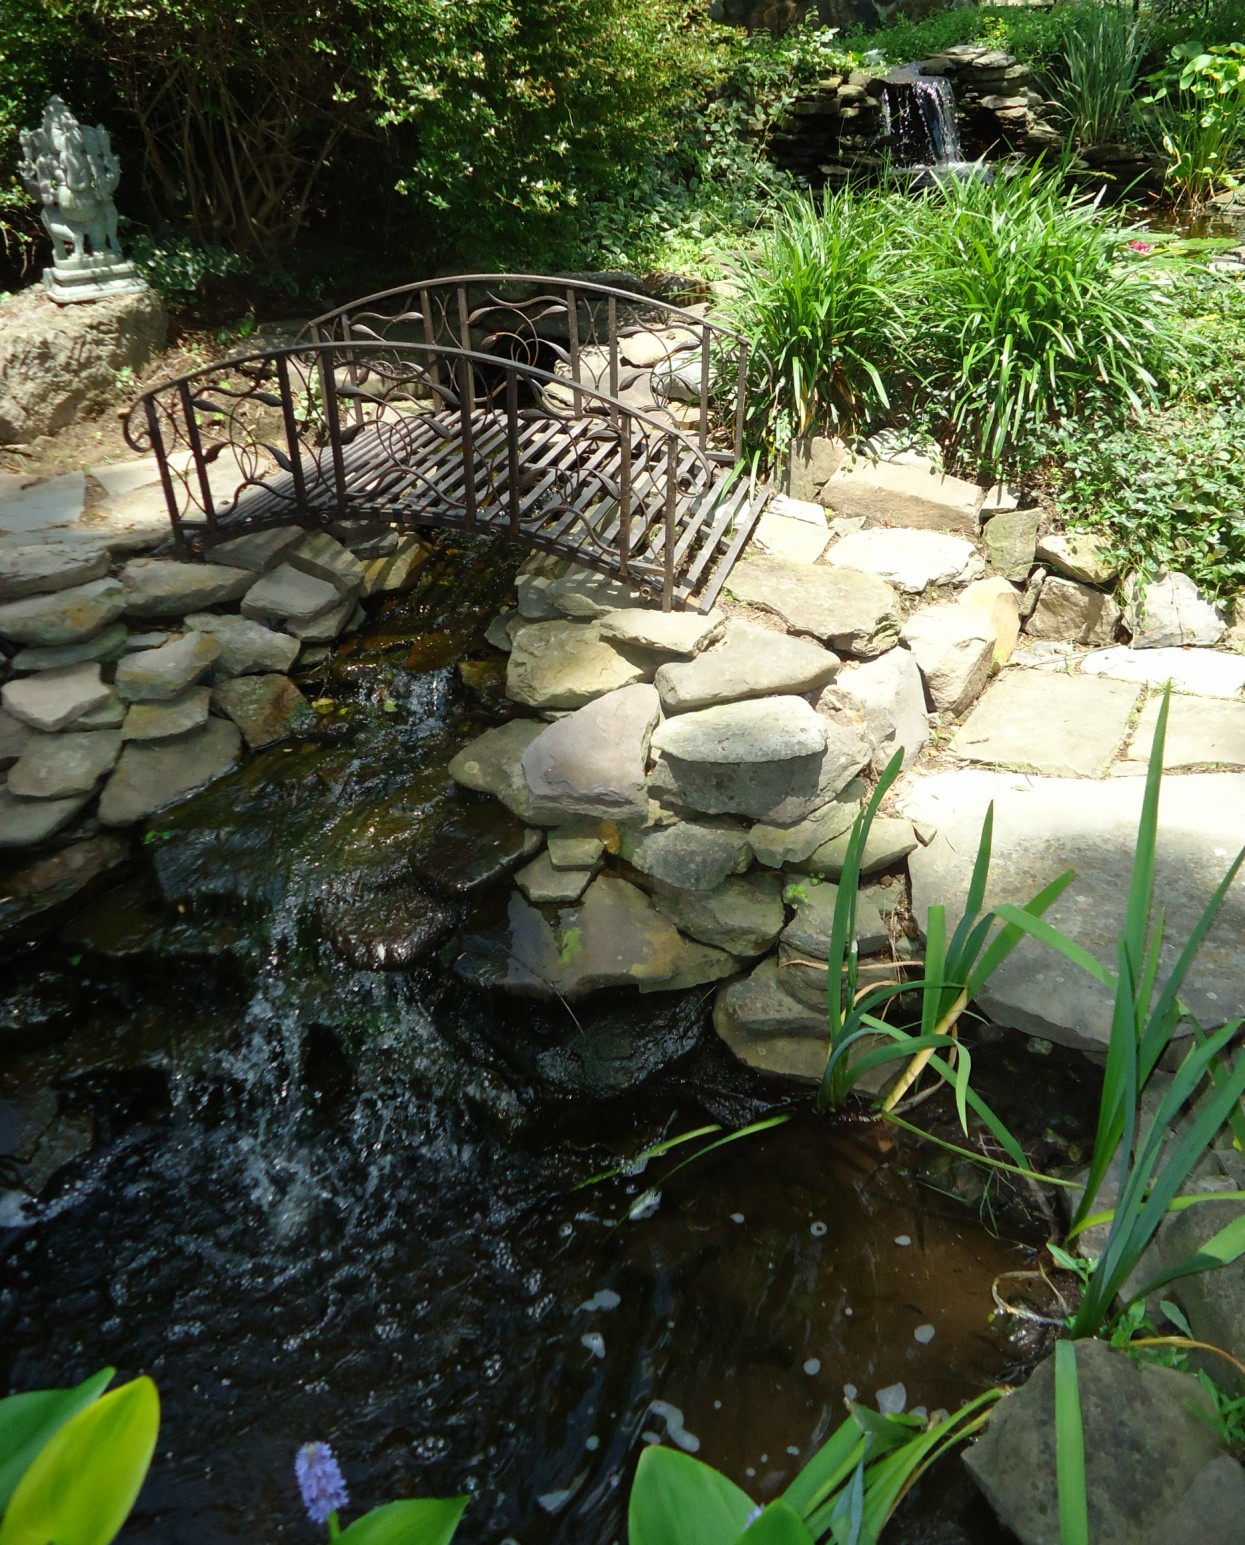 File:Garden Pond With Waterfalls And Bridge And Fish